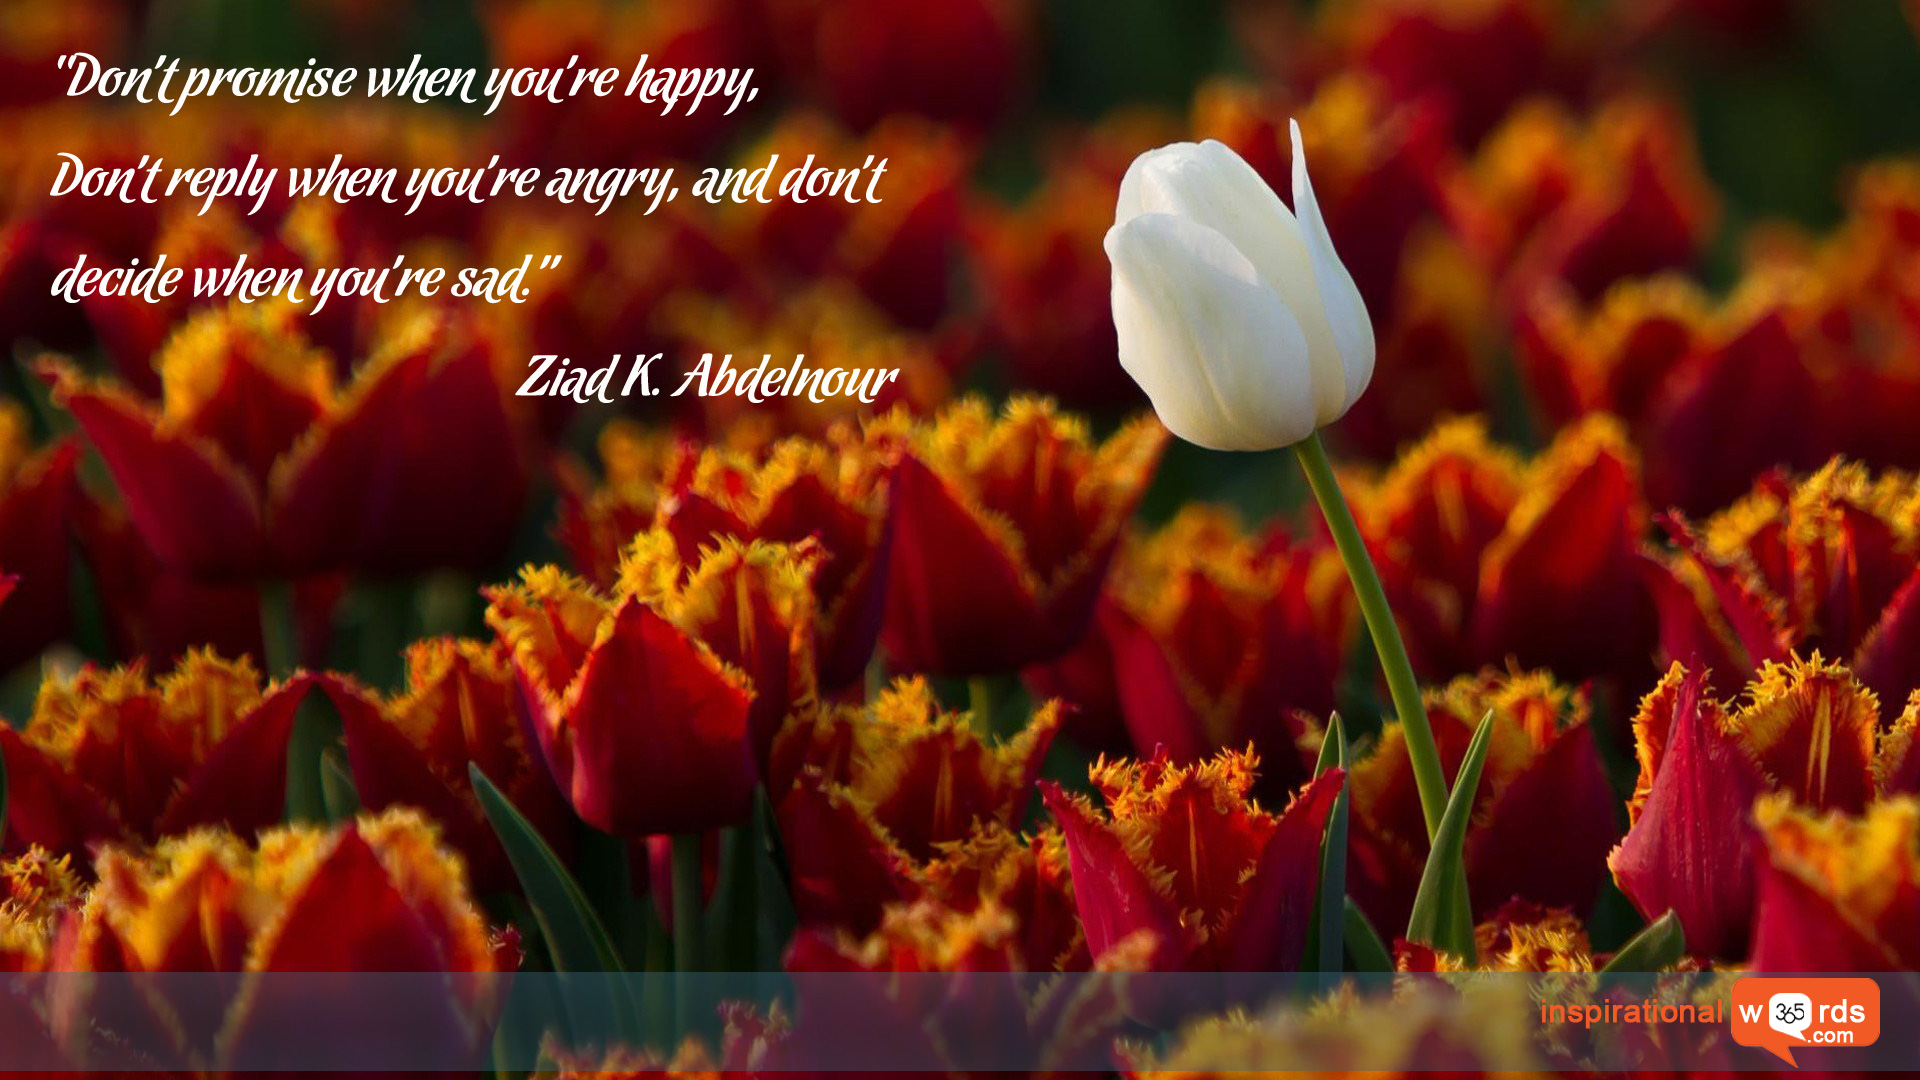 Inspirational Wallpaper Quote by Ziad K. Abdelnour